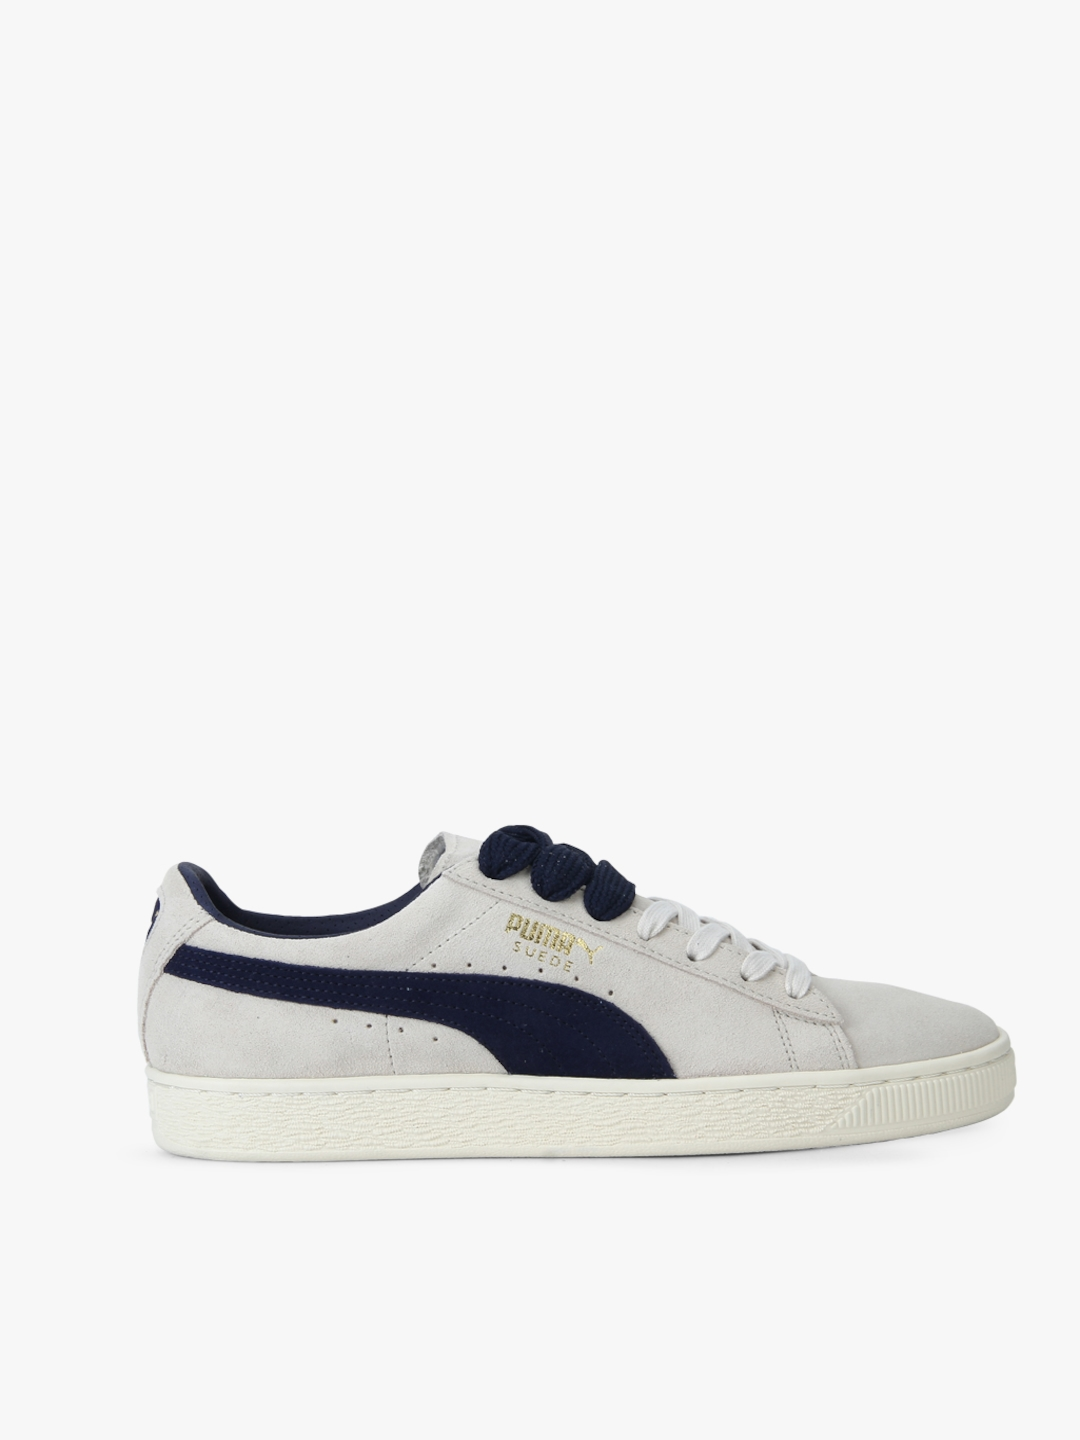 Buy Suede Classic Archive Birch Peacoat Beige Sneakers - Casual ... 7202c2b23